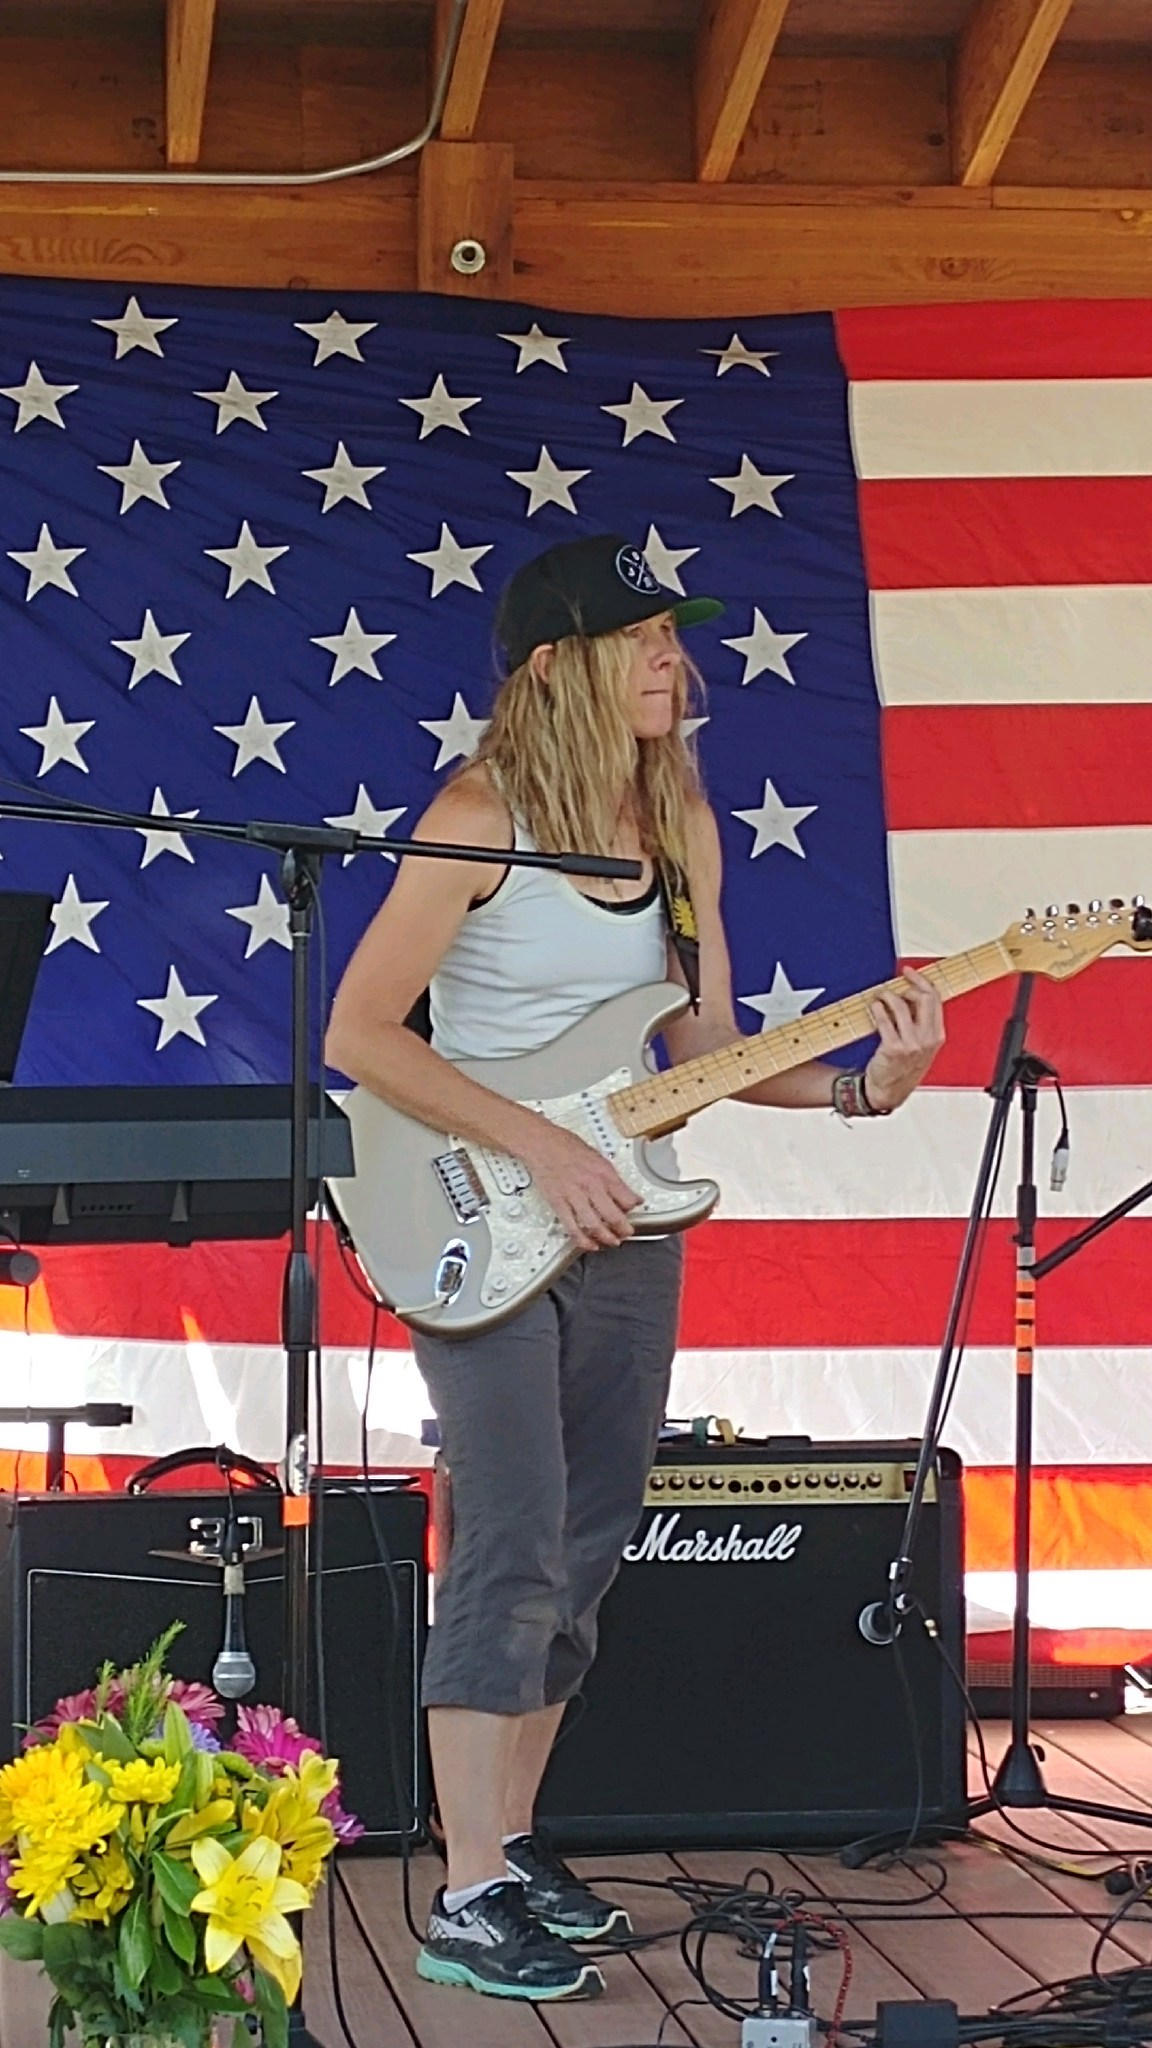 4th of July. Trying to channel Jimi Hendrix. That didn't work.